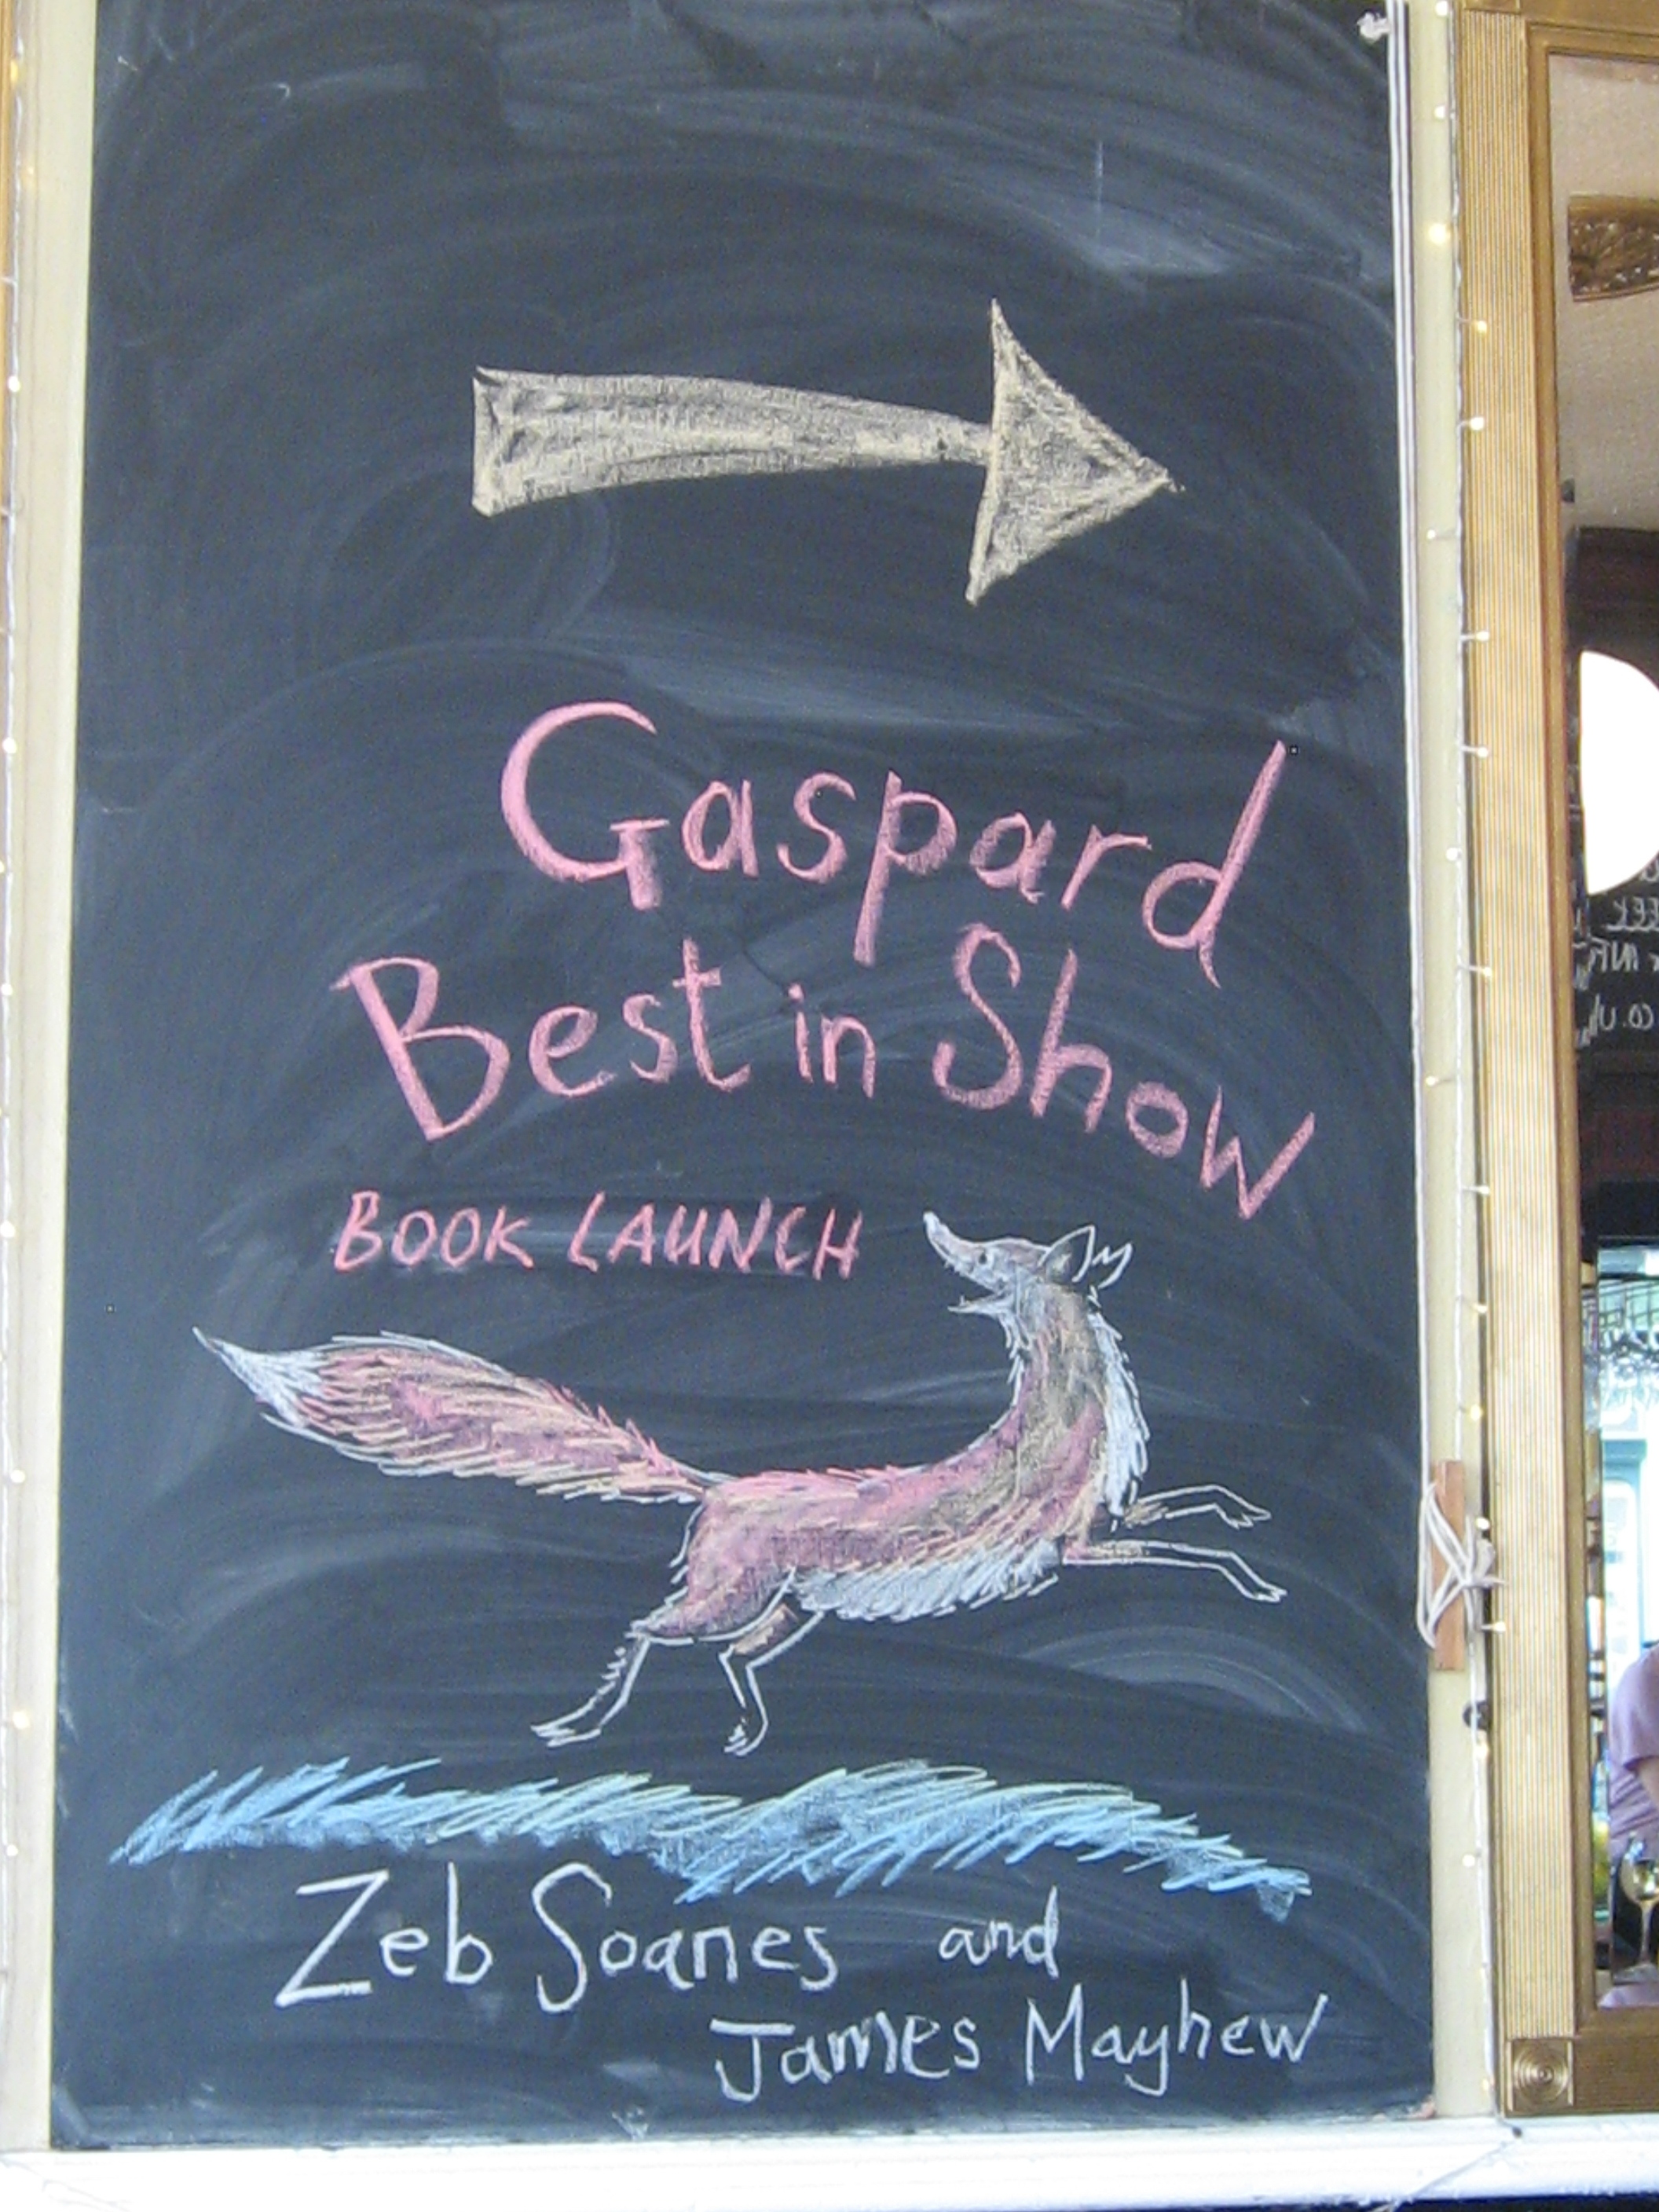 London Launch of Gaspard Best in Show